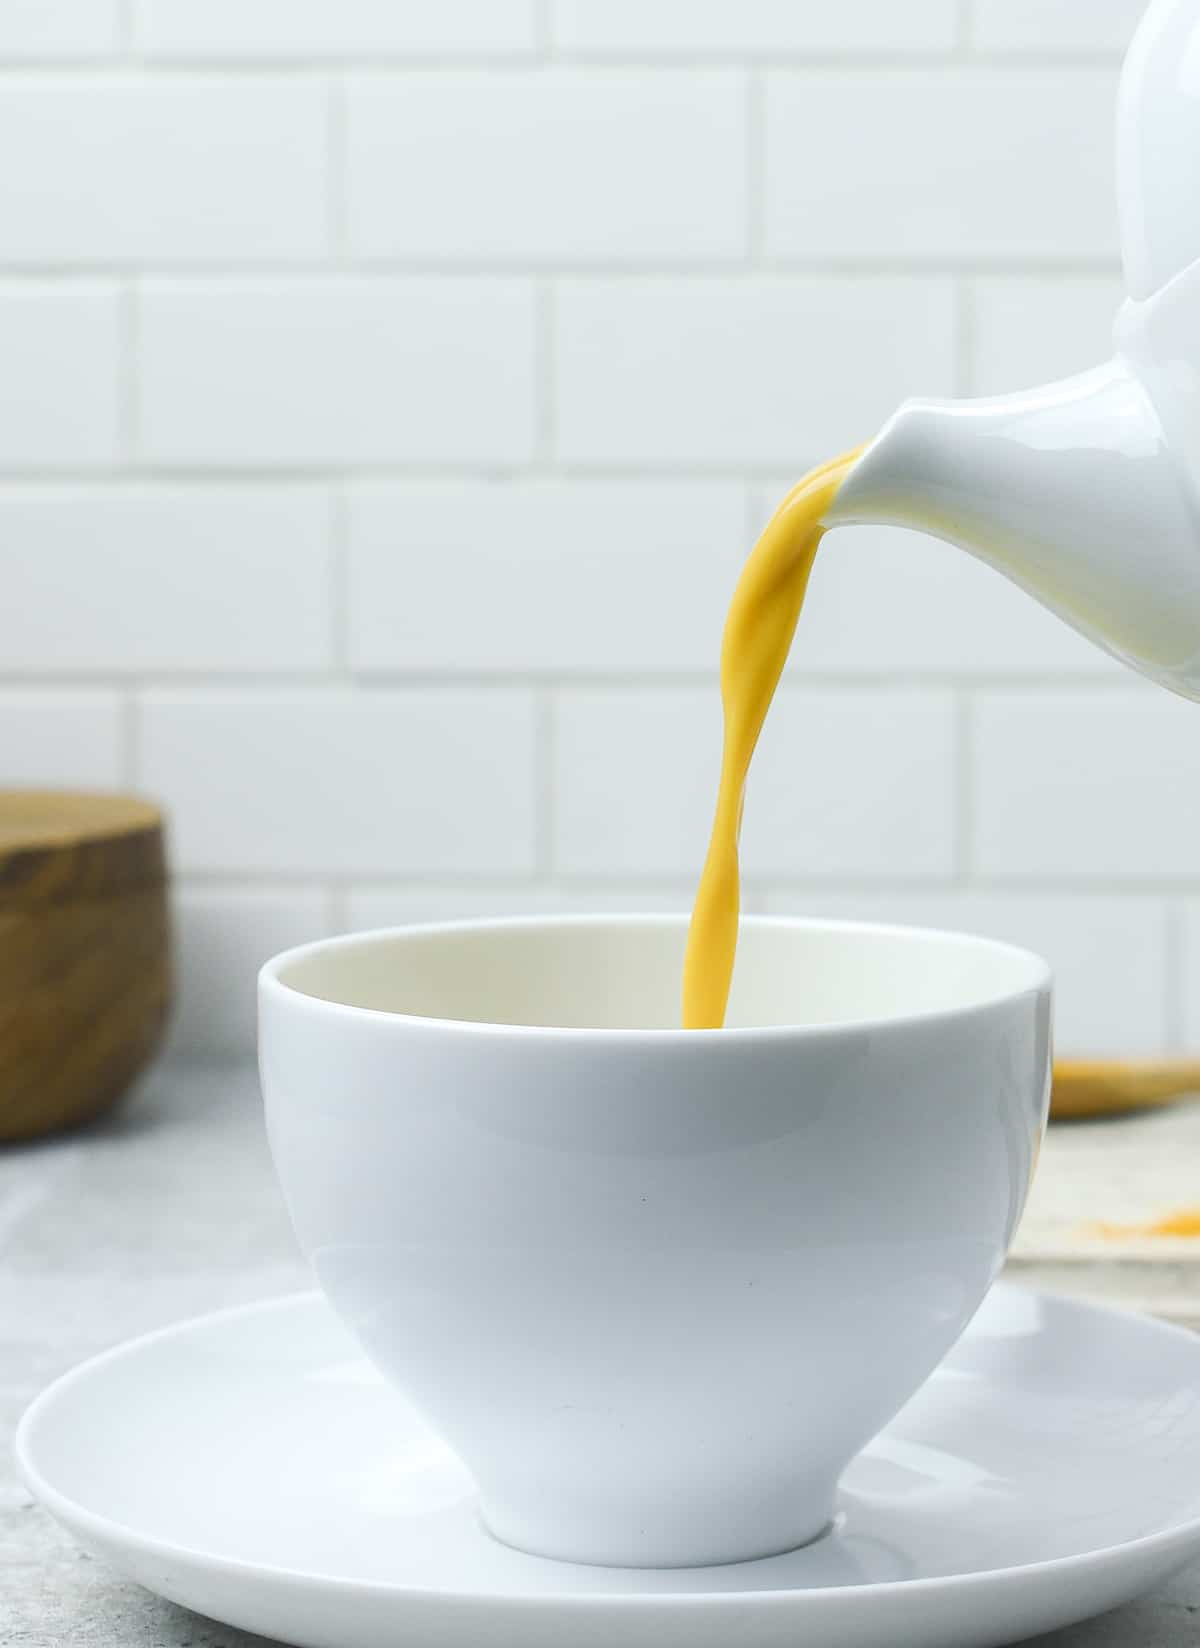 Golden milk latte being poured into cup.